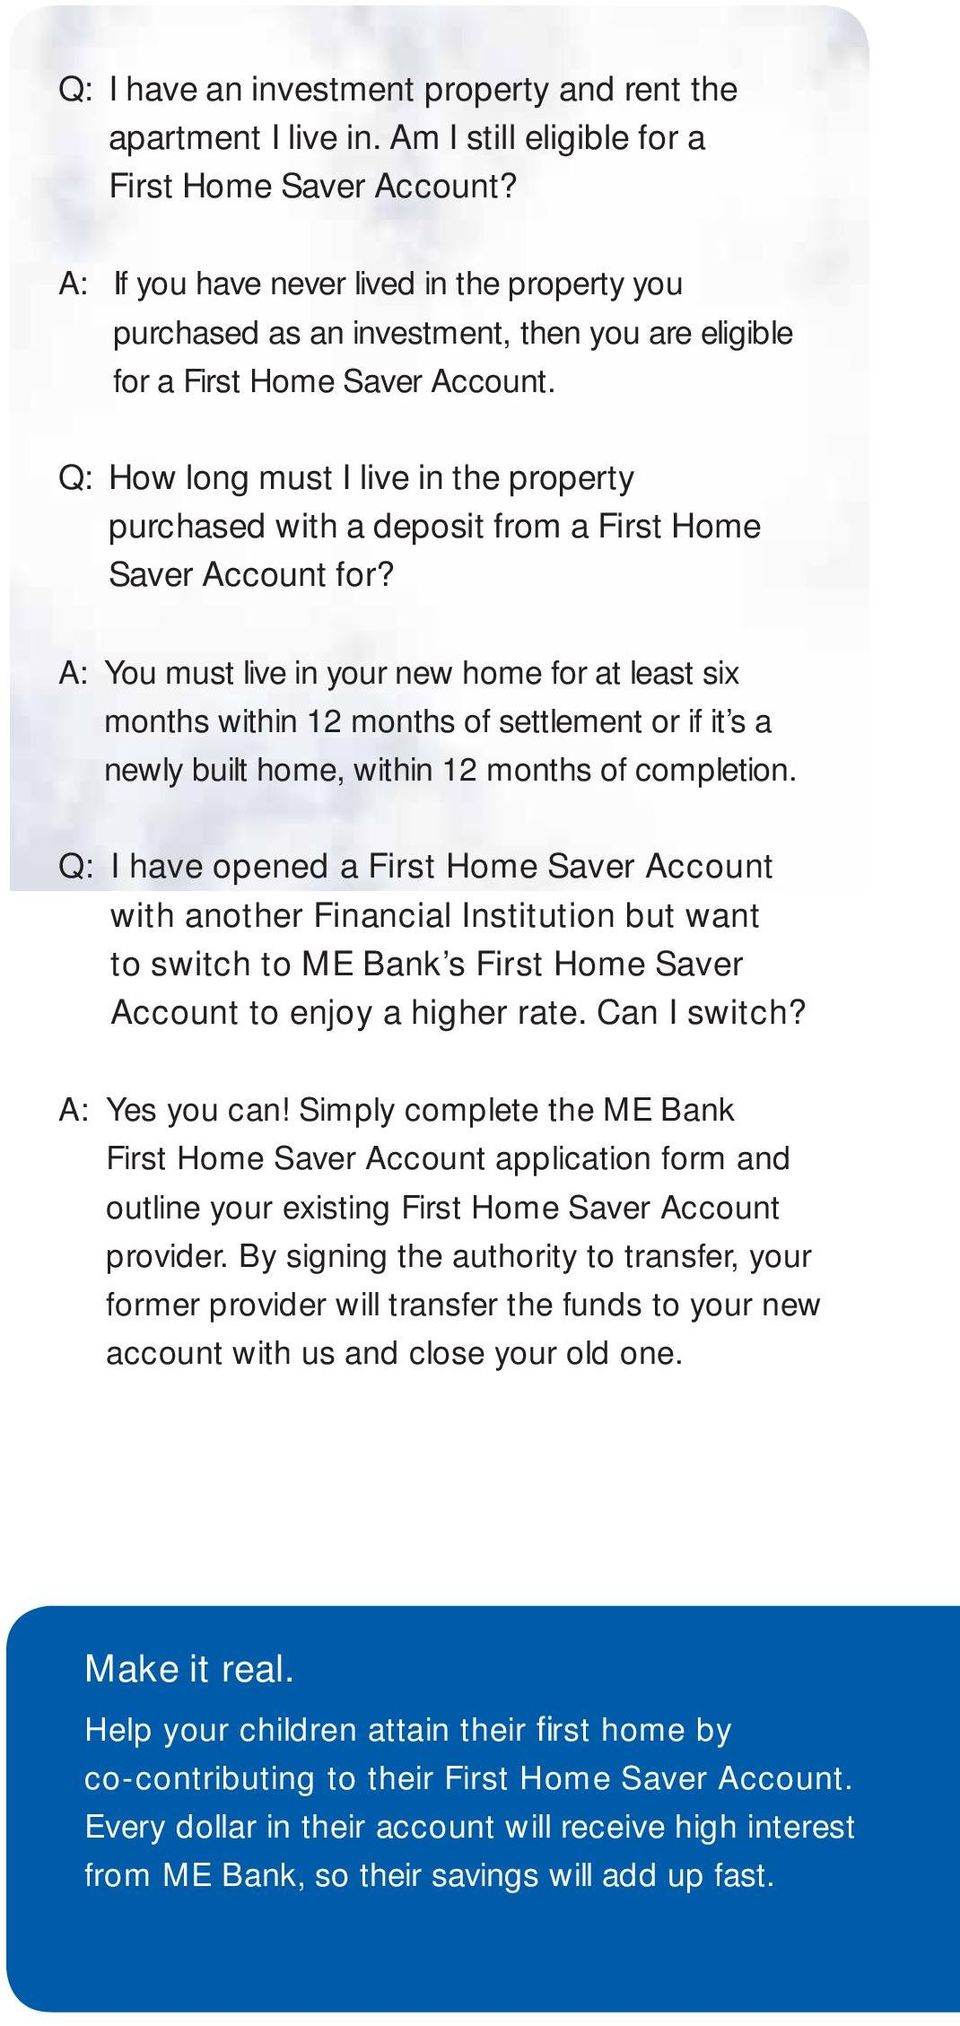 Q: How long must I live in the property purchased with a deposit from a First Home Saver Account for?